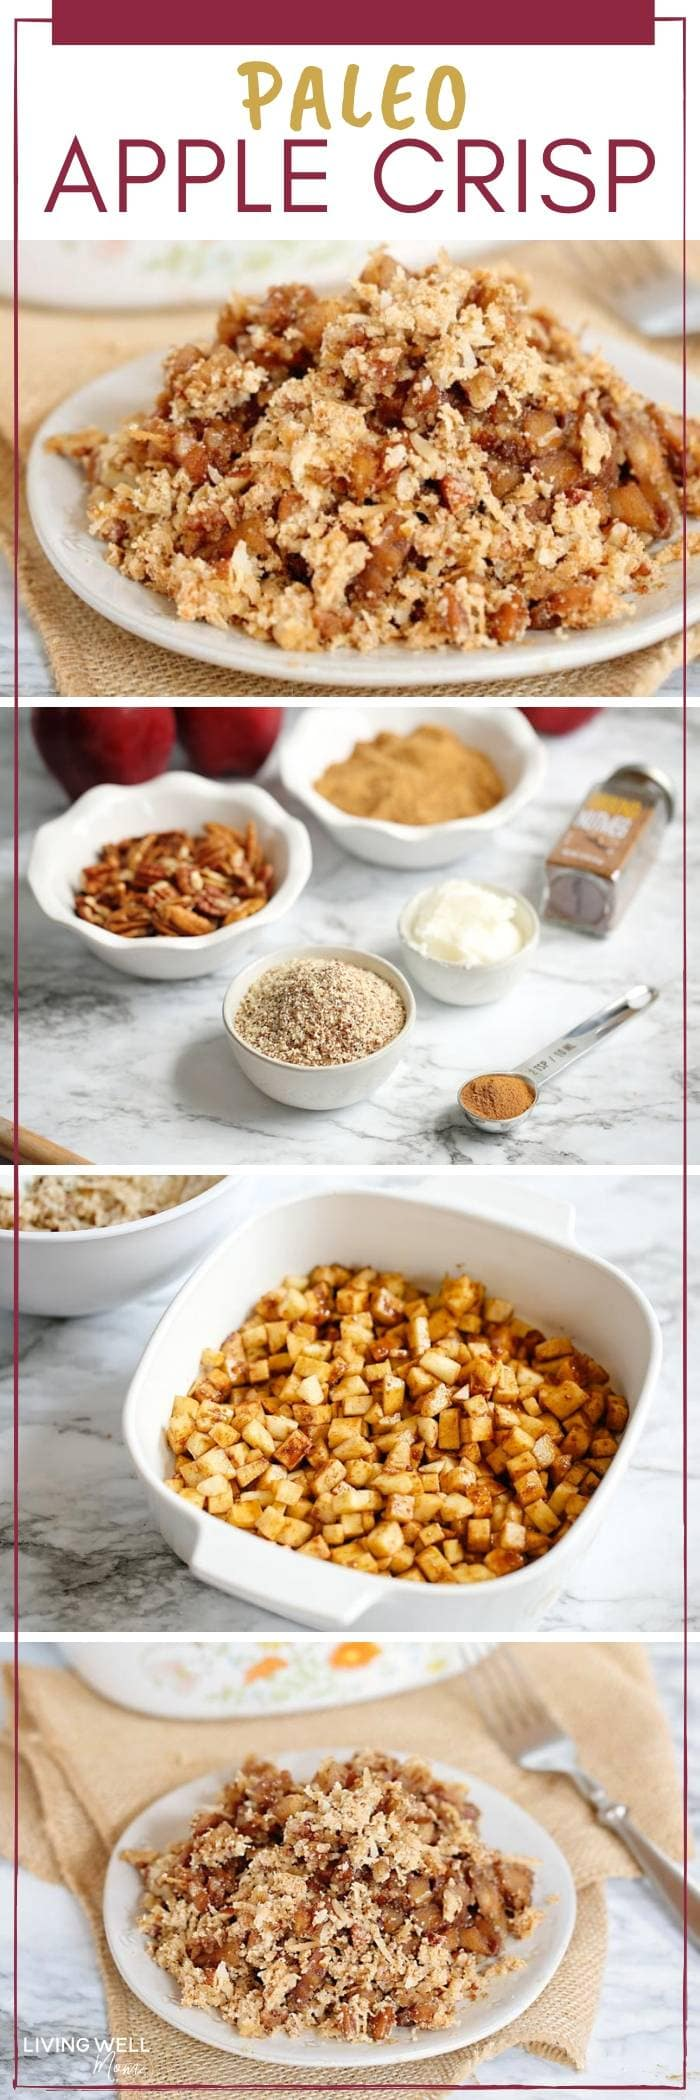 paleo apple crisp recipe